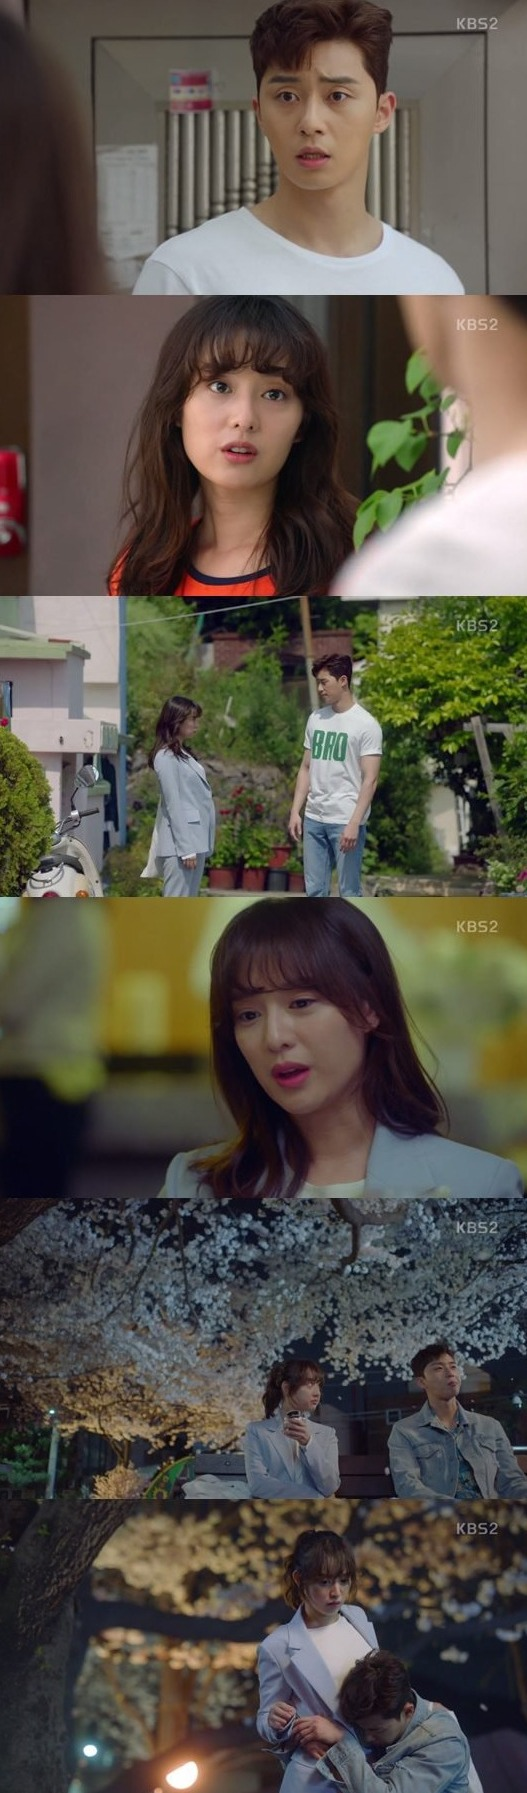 [Spoiler] Added episode 2 captures for the Korean drama 'Fight My Way'